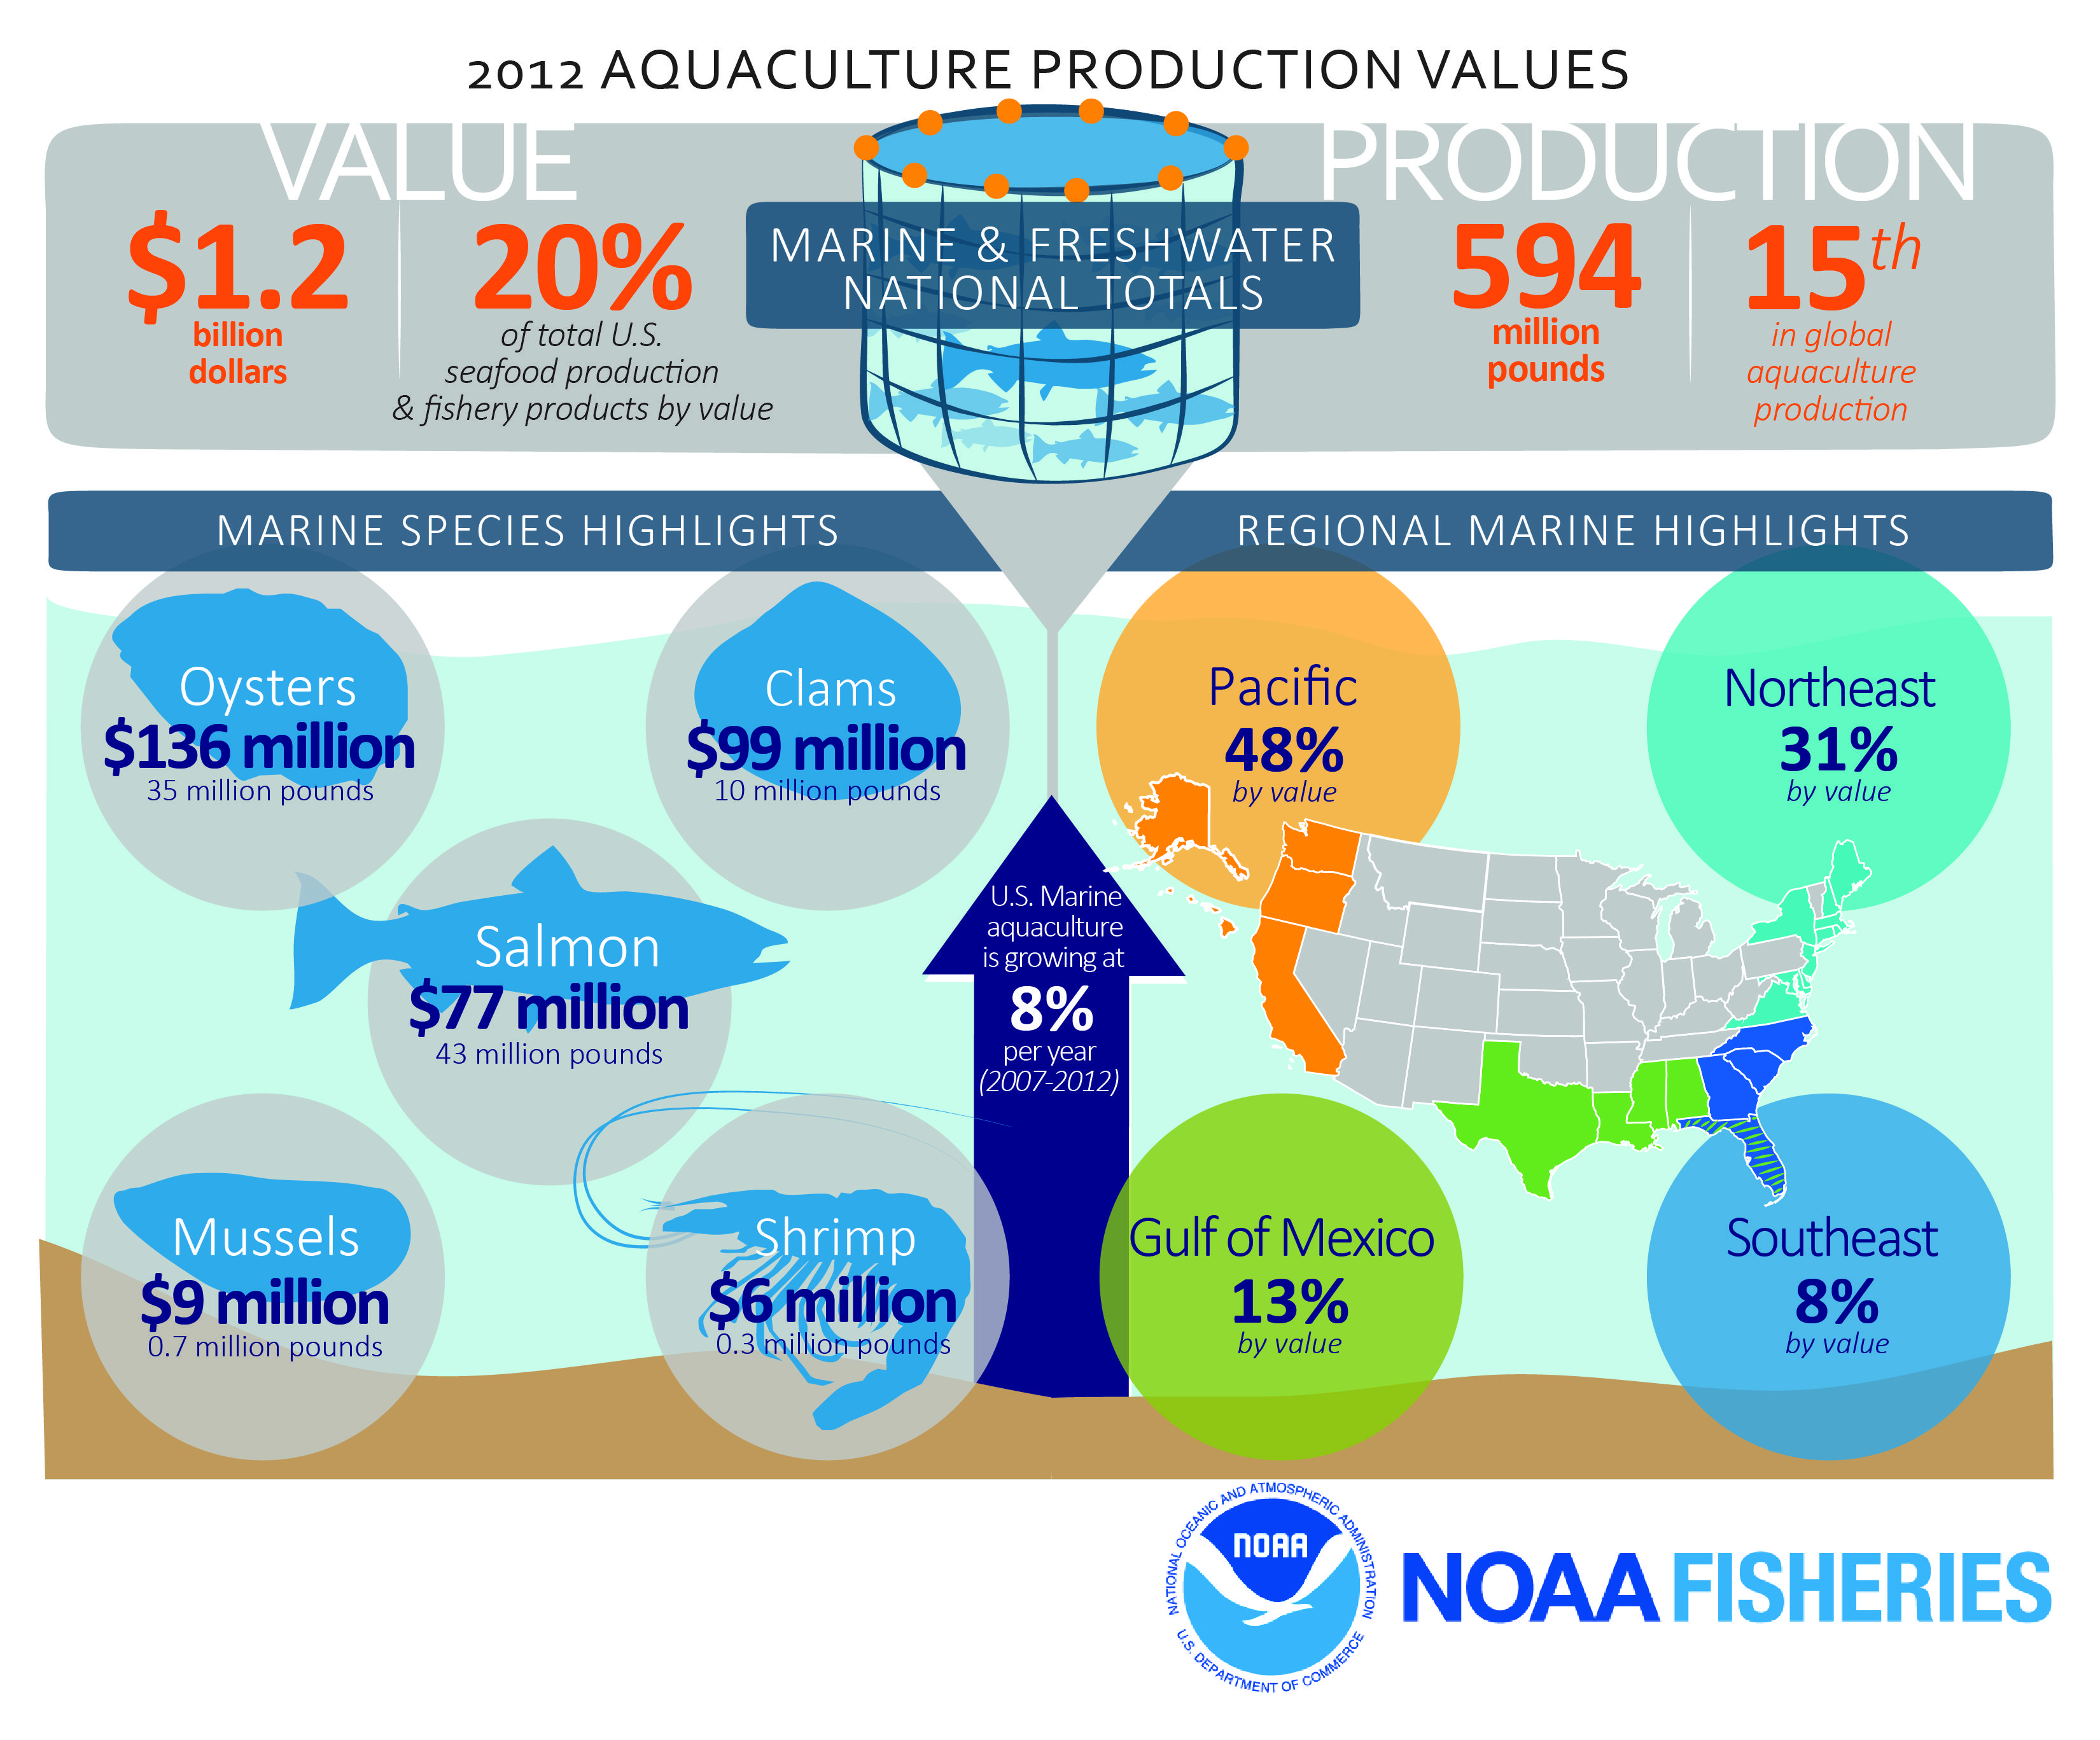 Aquacultureweek 2015 how much of your favorite seafood do we aquacultureweek 2015 how much of your favorite seafood do we produce explore us aquaculture production with our infographic fandeluxe Images